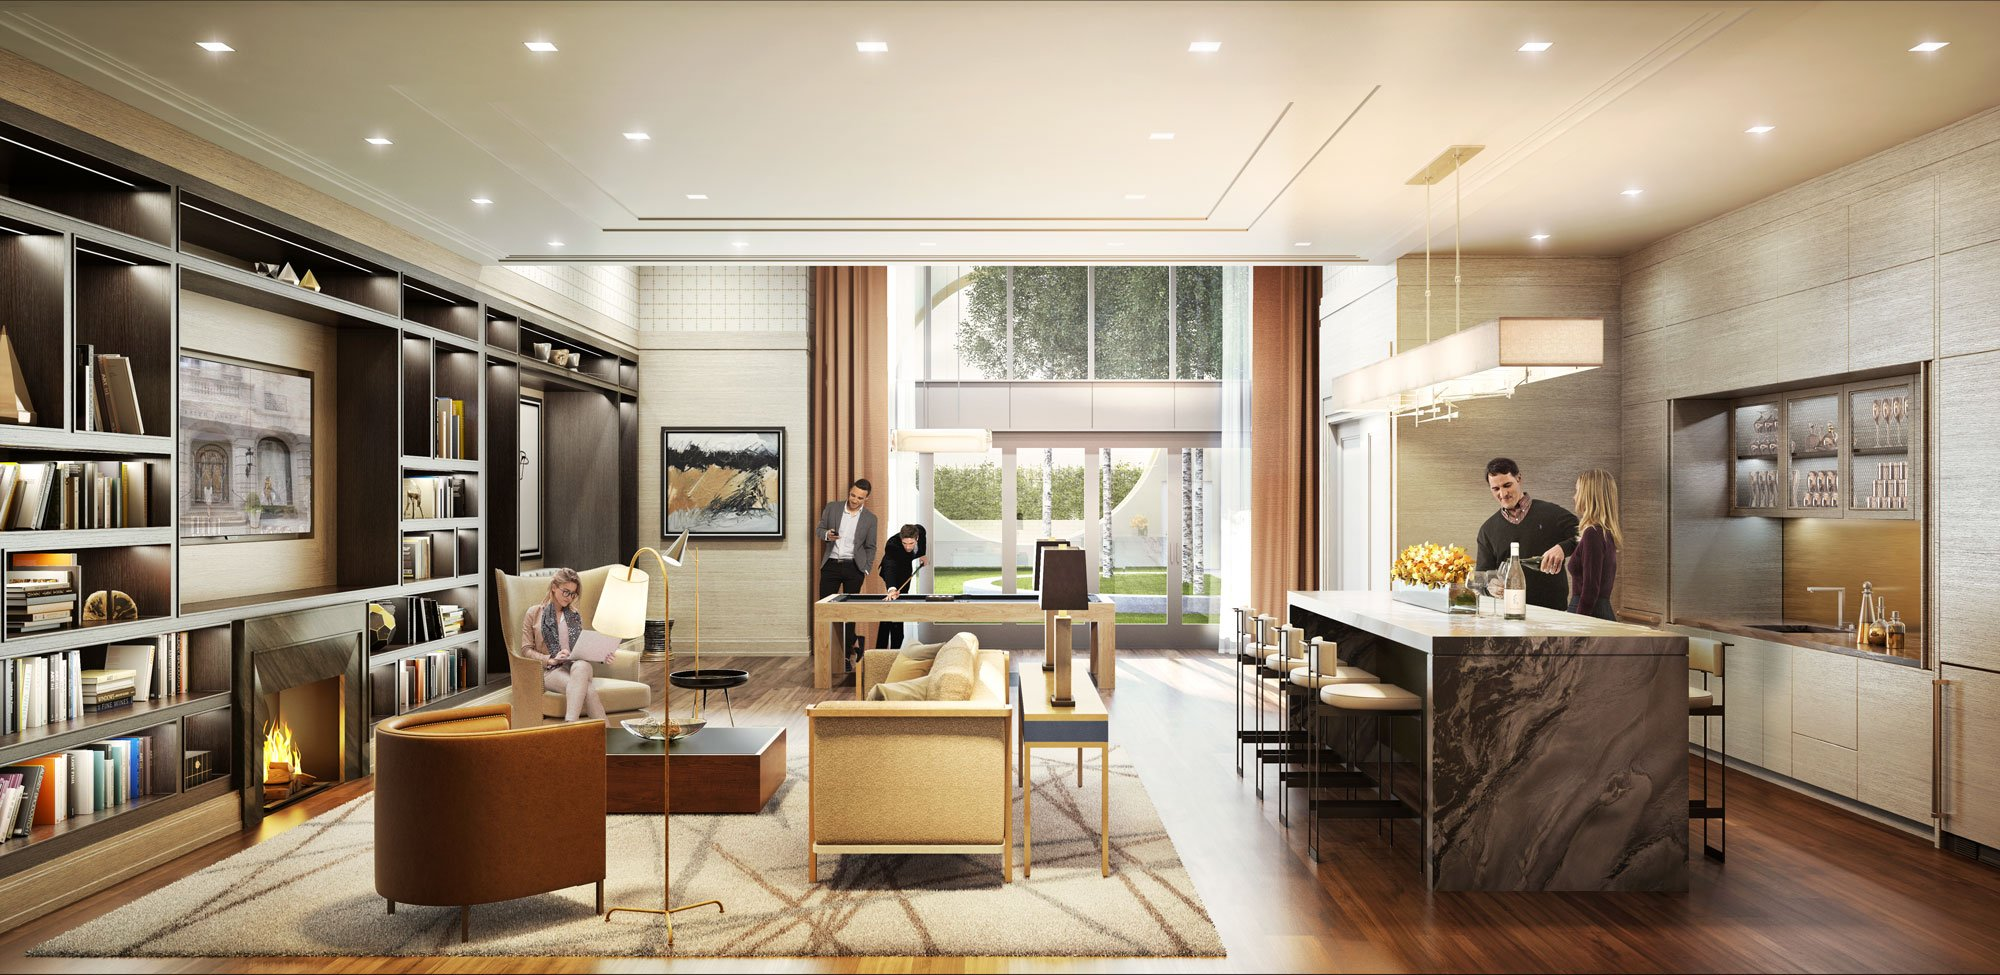 Luxury upper east side condos for sale the kent amenities for Office design kent